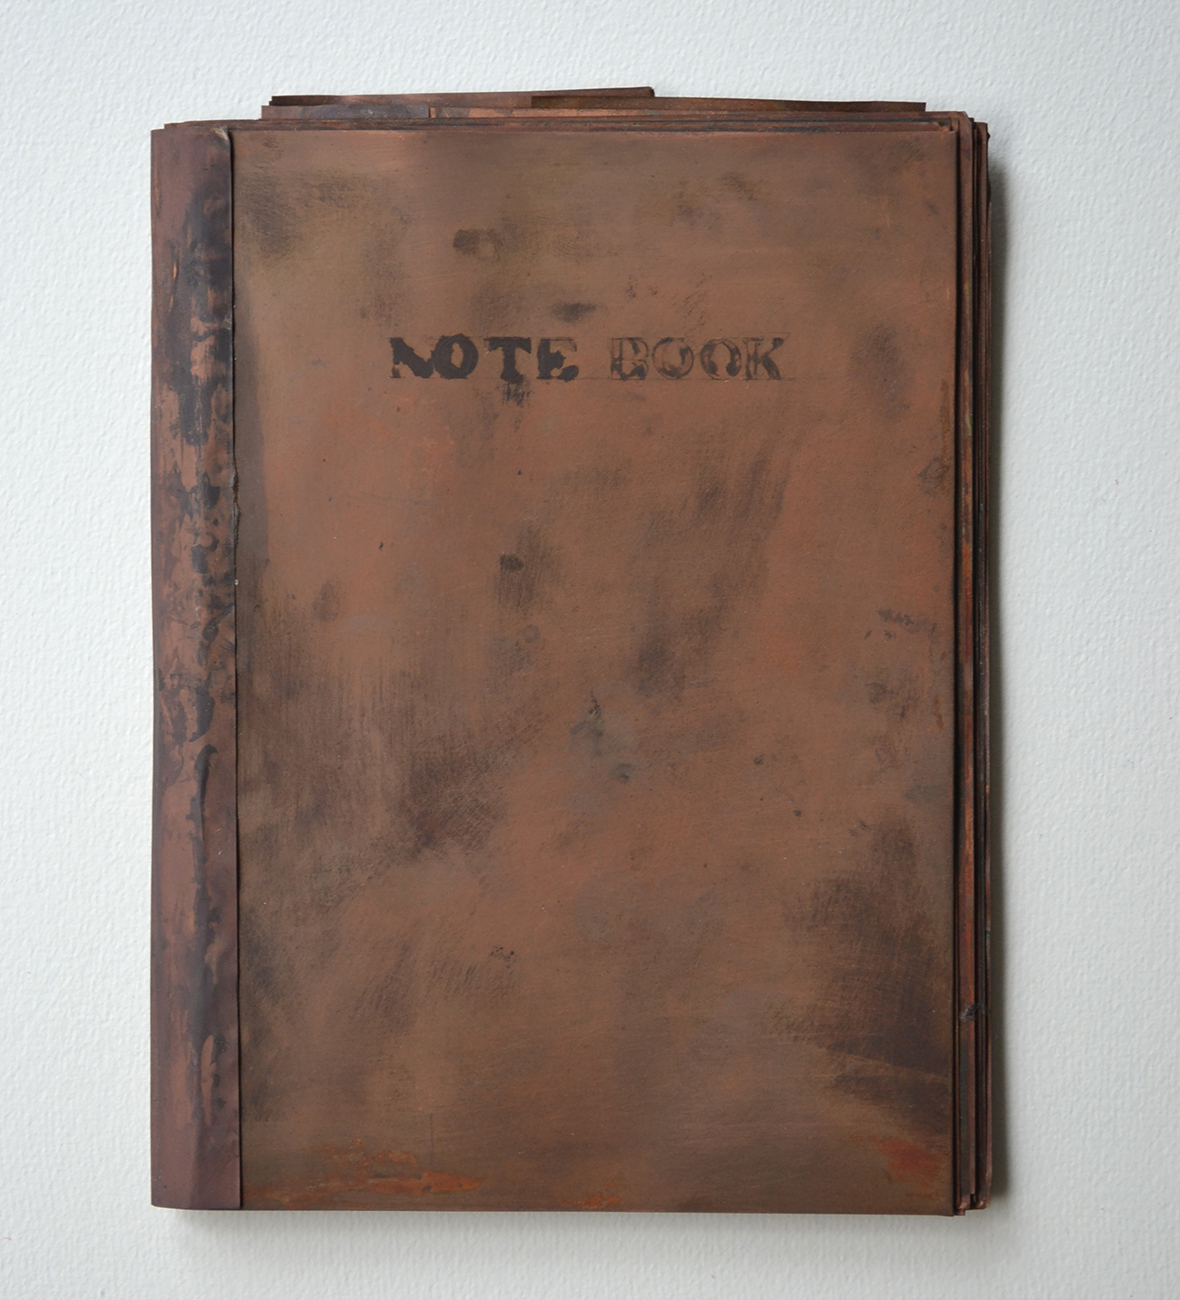 note book #21|copper|172 x 130 x 10 mm|2011